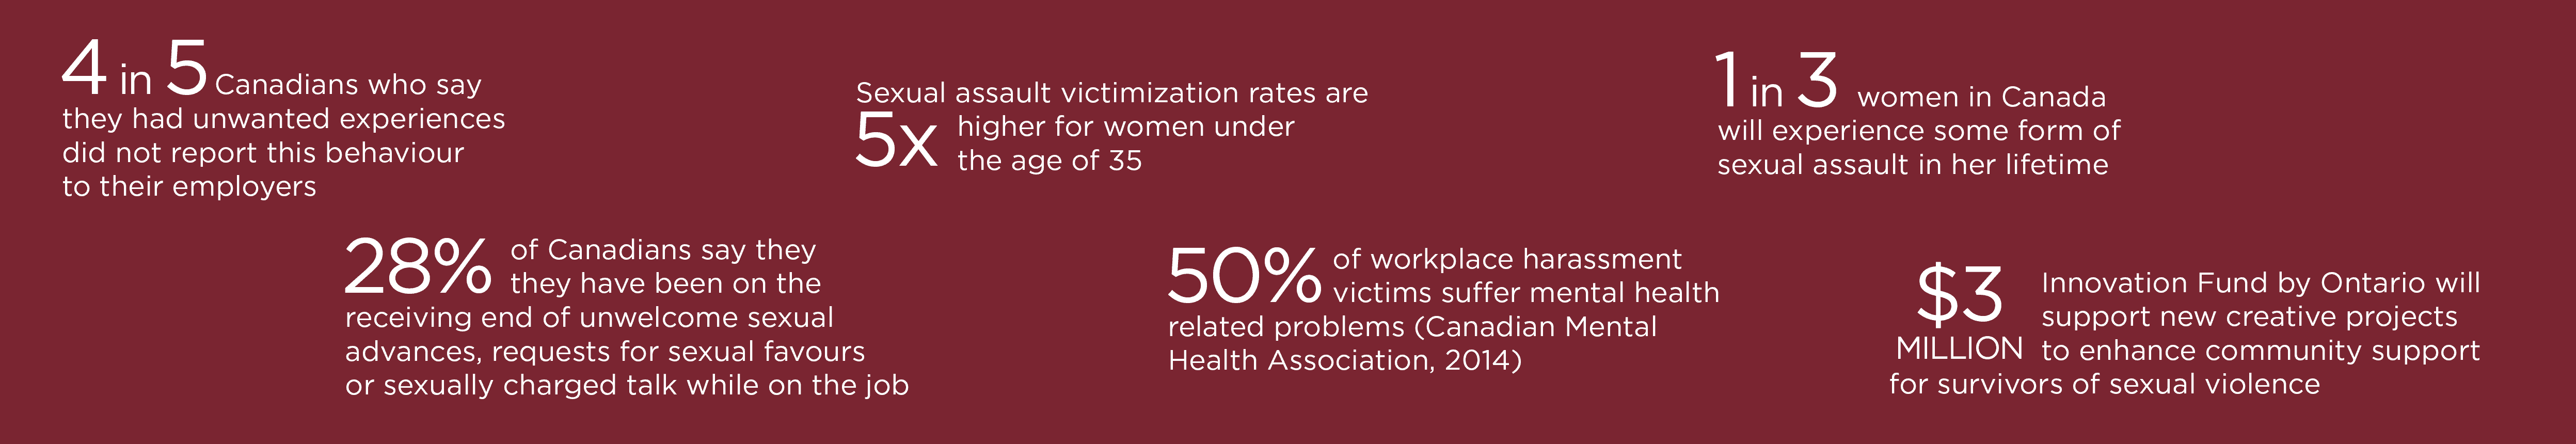 4 in 5 Canadians who say they had unwanted experiences did not report this behaviour to their employers.   28% of Canadians say they have been on the receiving end of unwelcome sexual advances, requests for sexual favours or sexually charged talk while on the job.  Sexual assault victimization rates are 5 times higher for women under the age of 35.  50% of workplace harassment victims suffer mental health related problems.  1 in 3 women in Canada will experience some form of sexual assault in her lifetime.  $3 million from Innovation Fund by Ontario will support new creative projects to enhance community support for survivors of sexual violence.